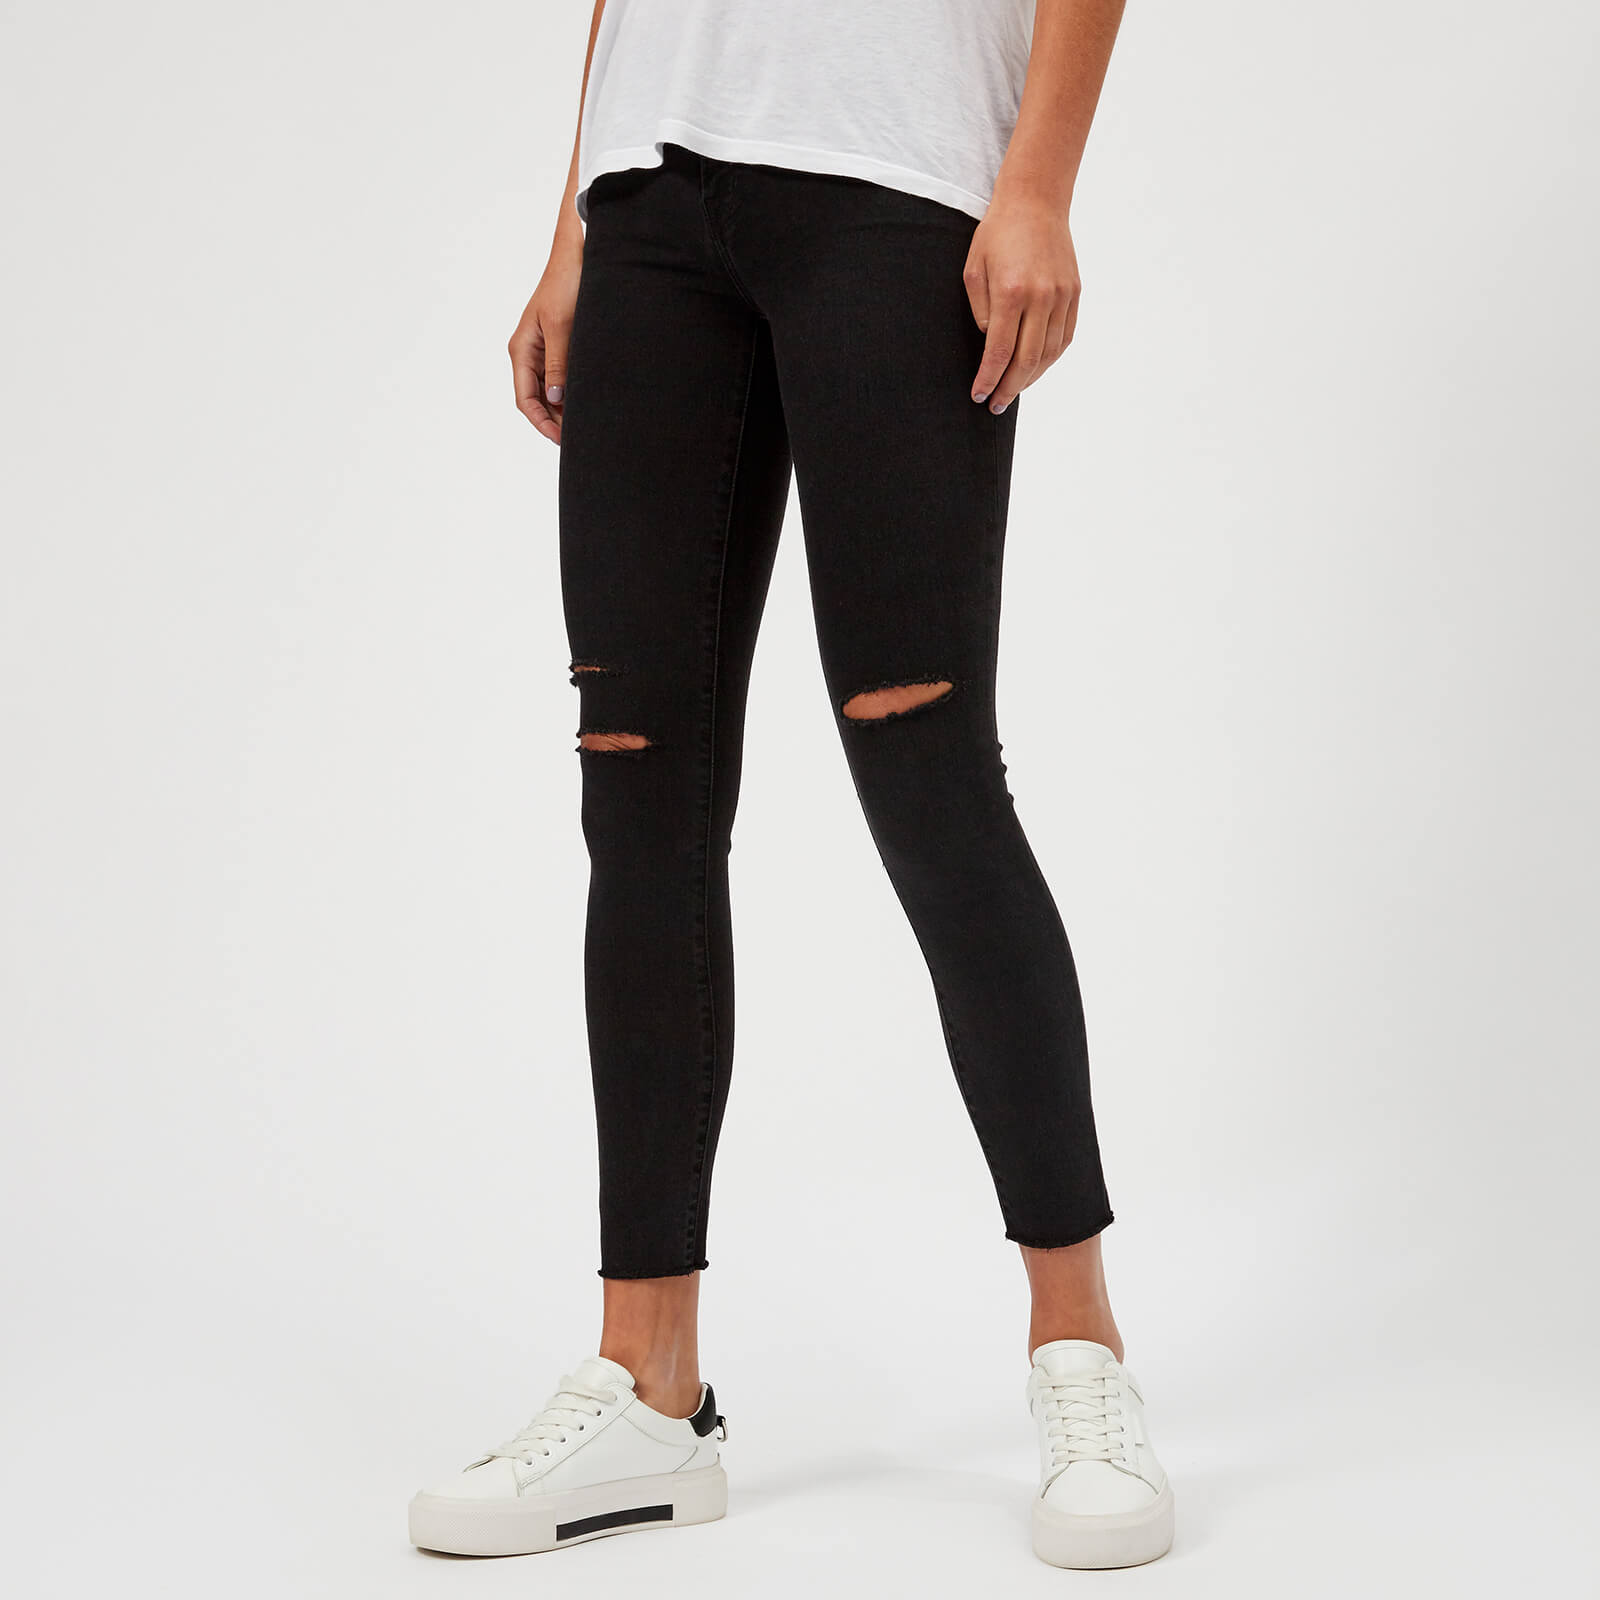 cc0db5c3a56 J Brand Women s 8227 Mid Rise Cropped Skinny Jeans - Black Mercy - Free UK  Delivery over £50